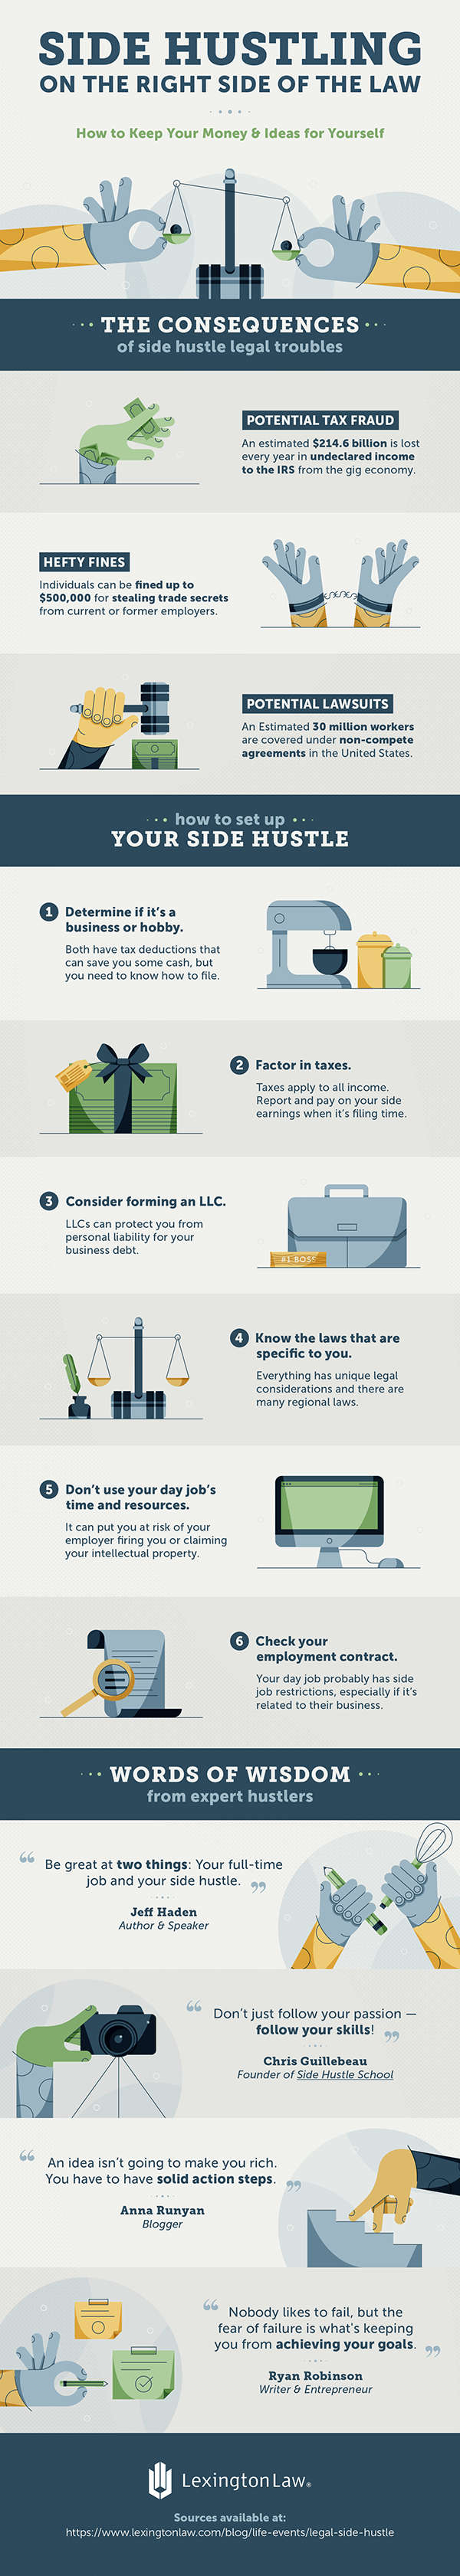 How To Avoid Legal Disasters At Your Side Hustle Infographics